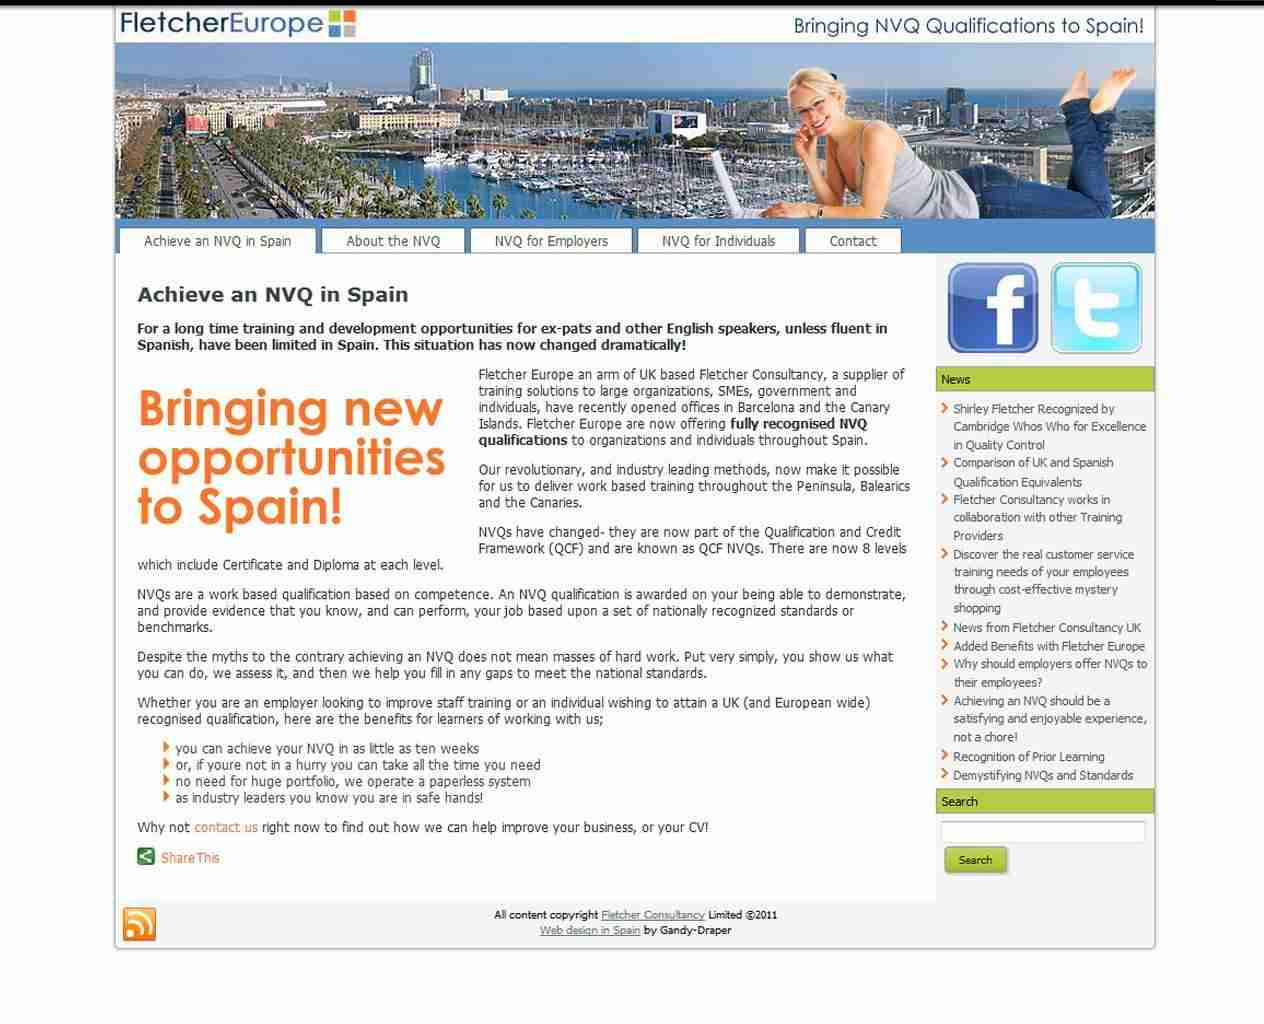 Spain Web Design and more by Gandy-Draper | Professional approach with positive ideas